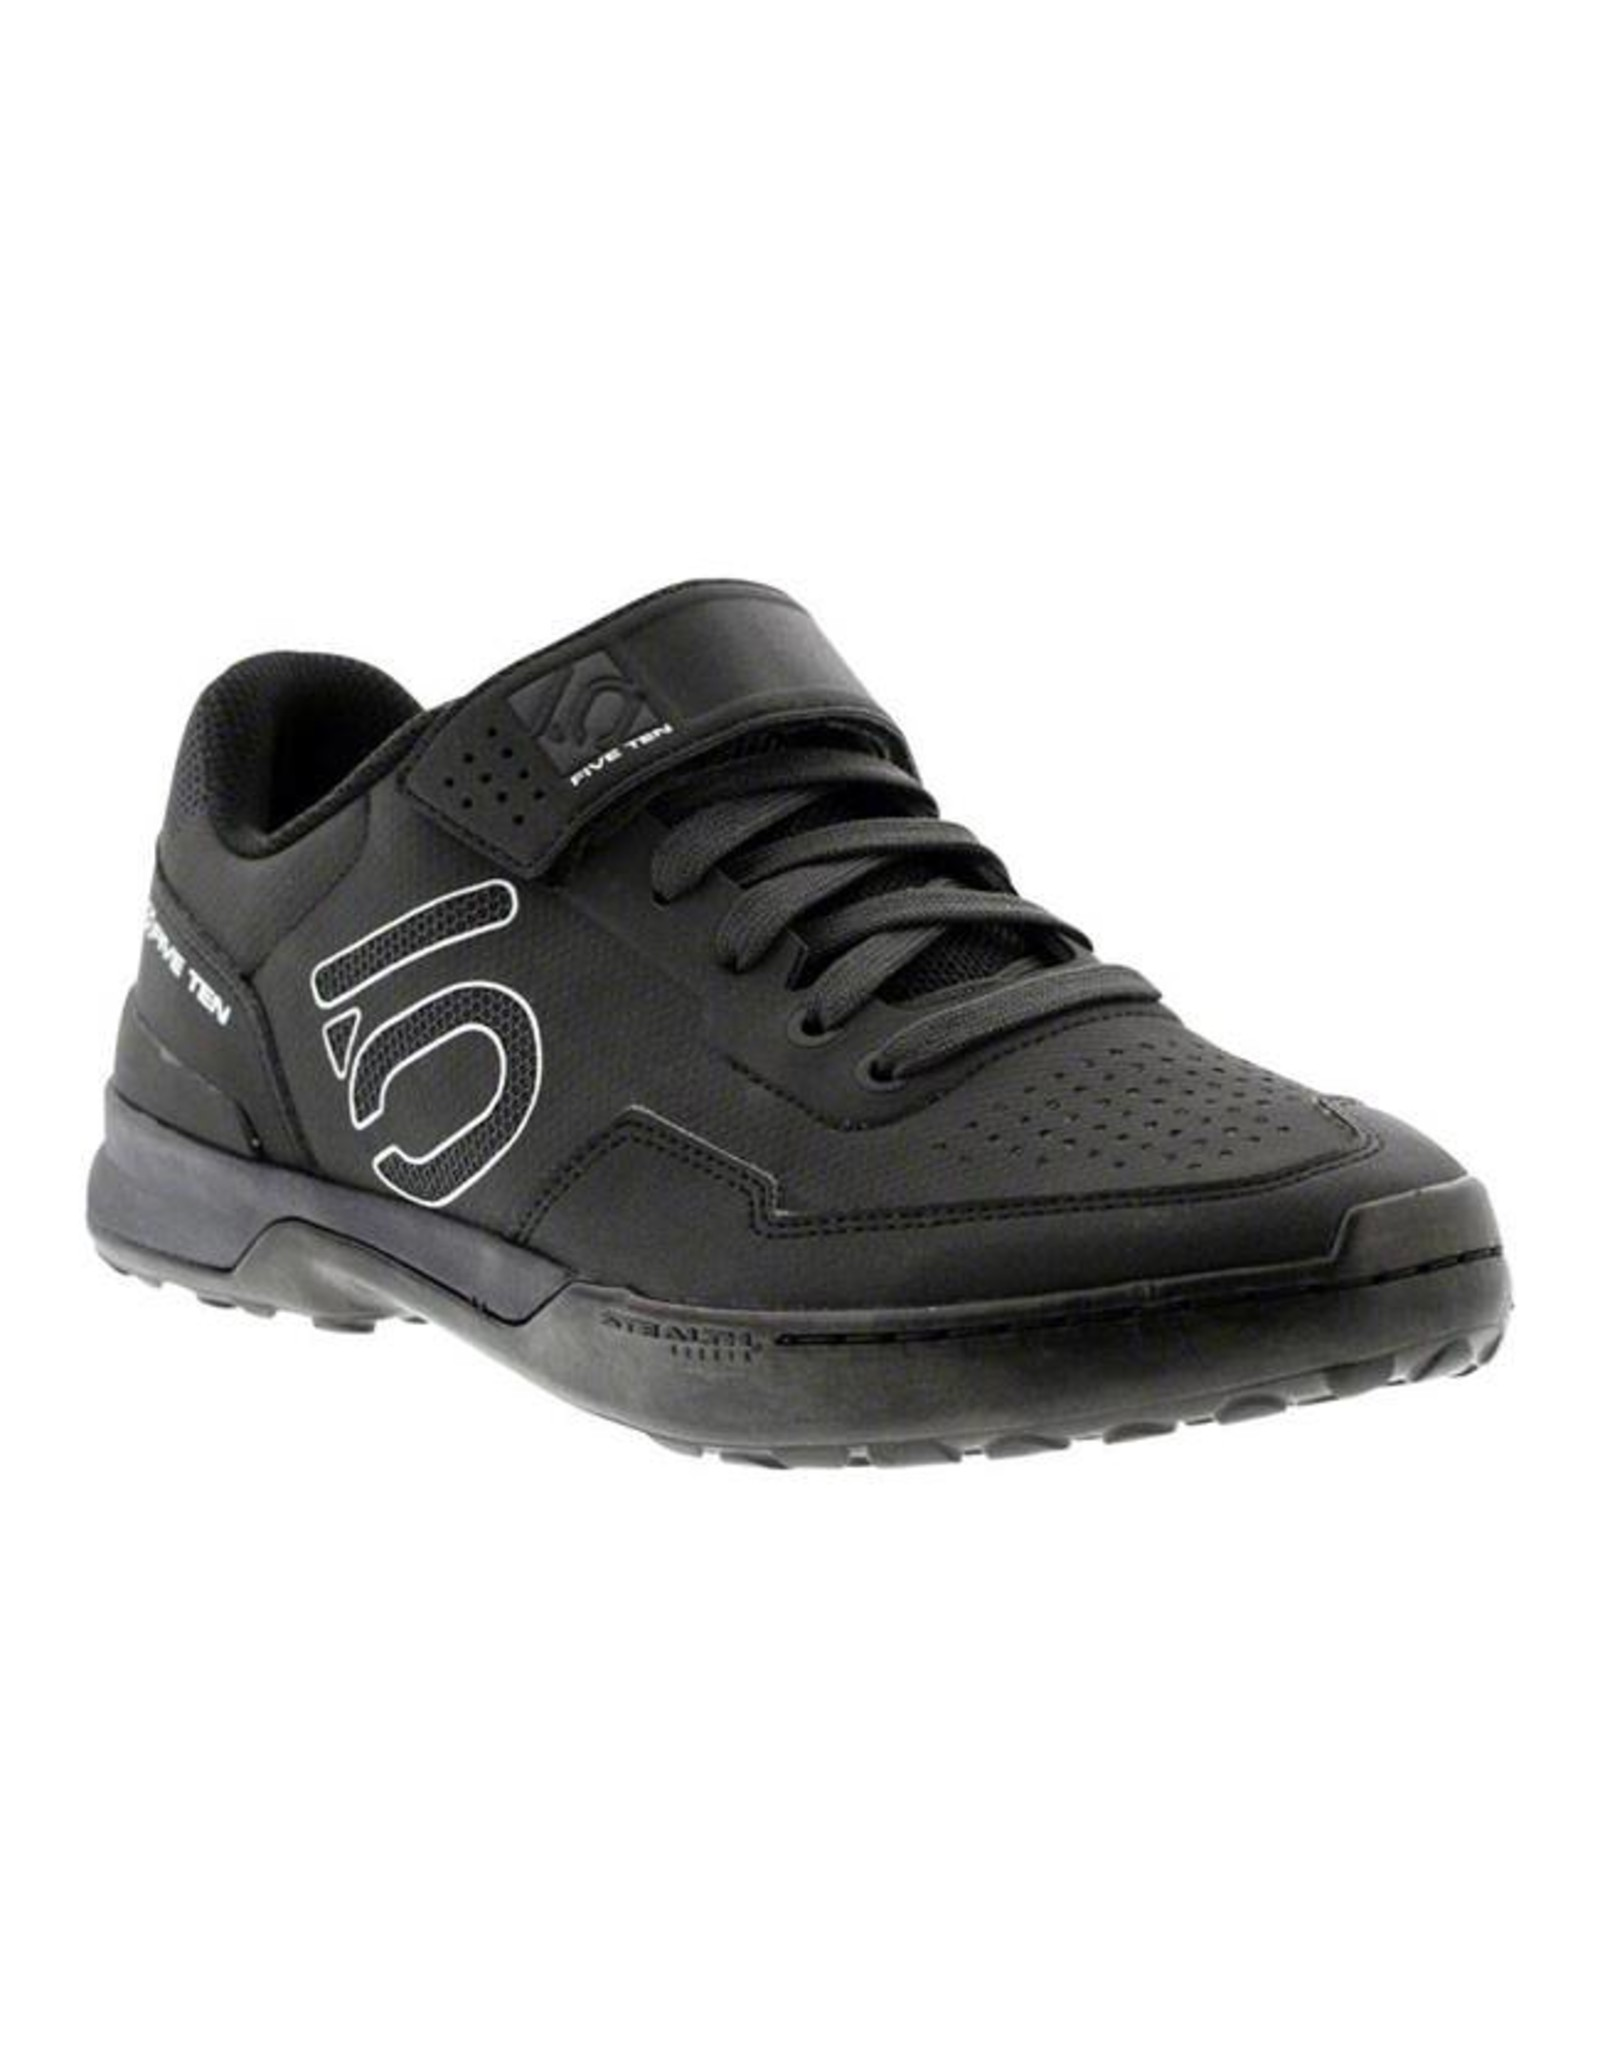 Five Ten Five Ten Kestrel Lace Men's Clipless Shoe: Black Carbon 11.5